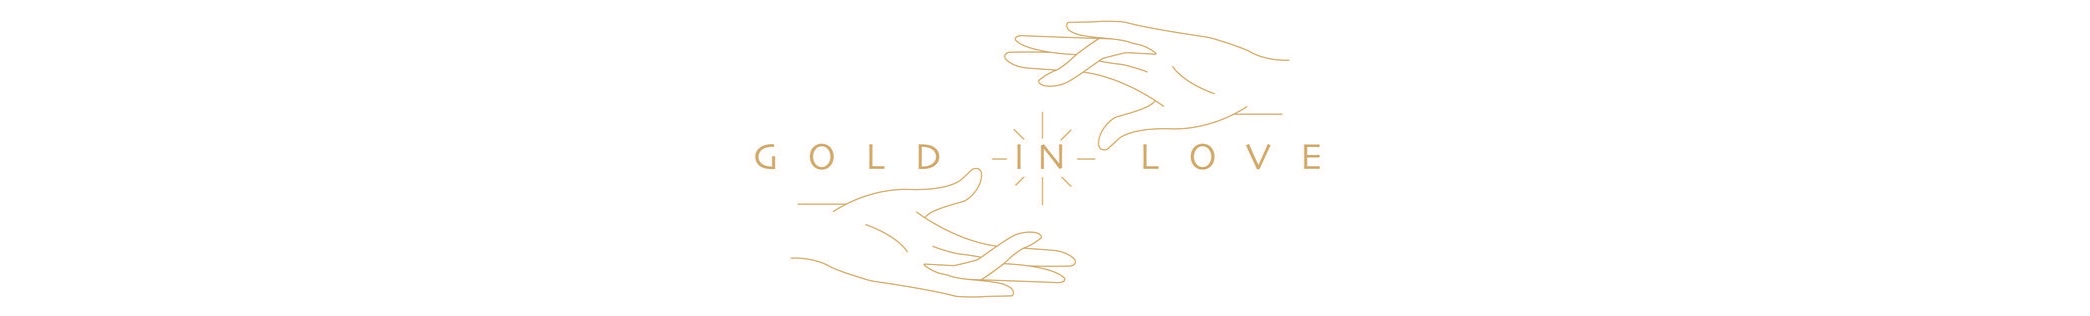 gold-in-love-footer-logo